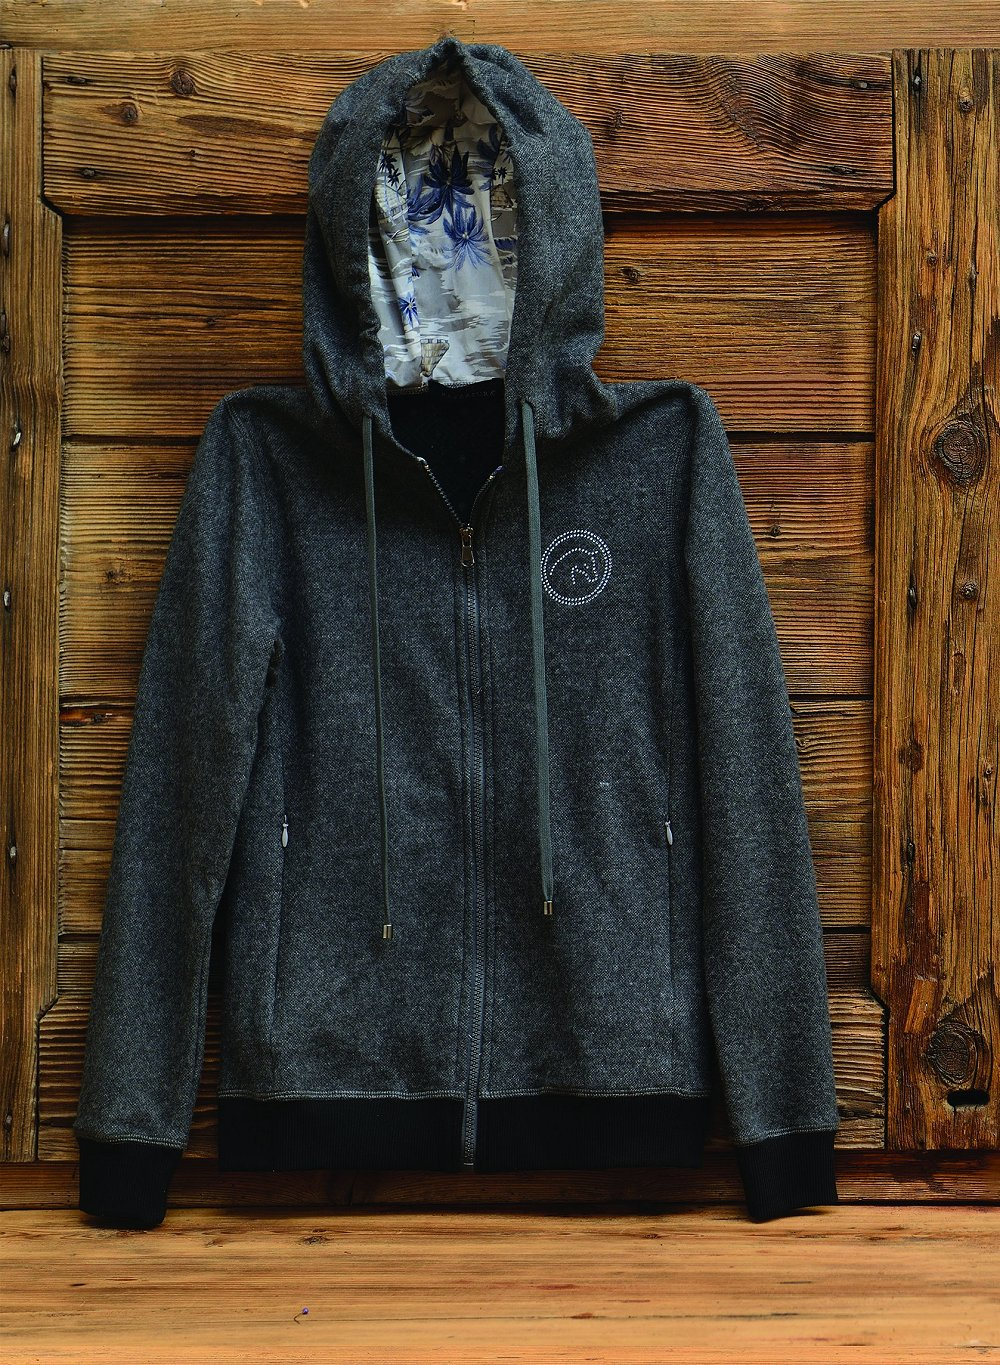 Charcoal grey sweatshirt with zip and hood, blue and grey palm patterned internal details.